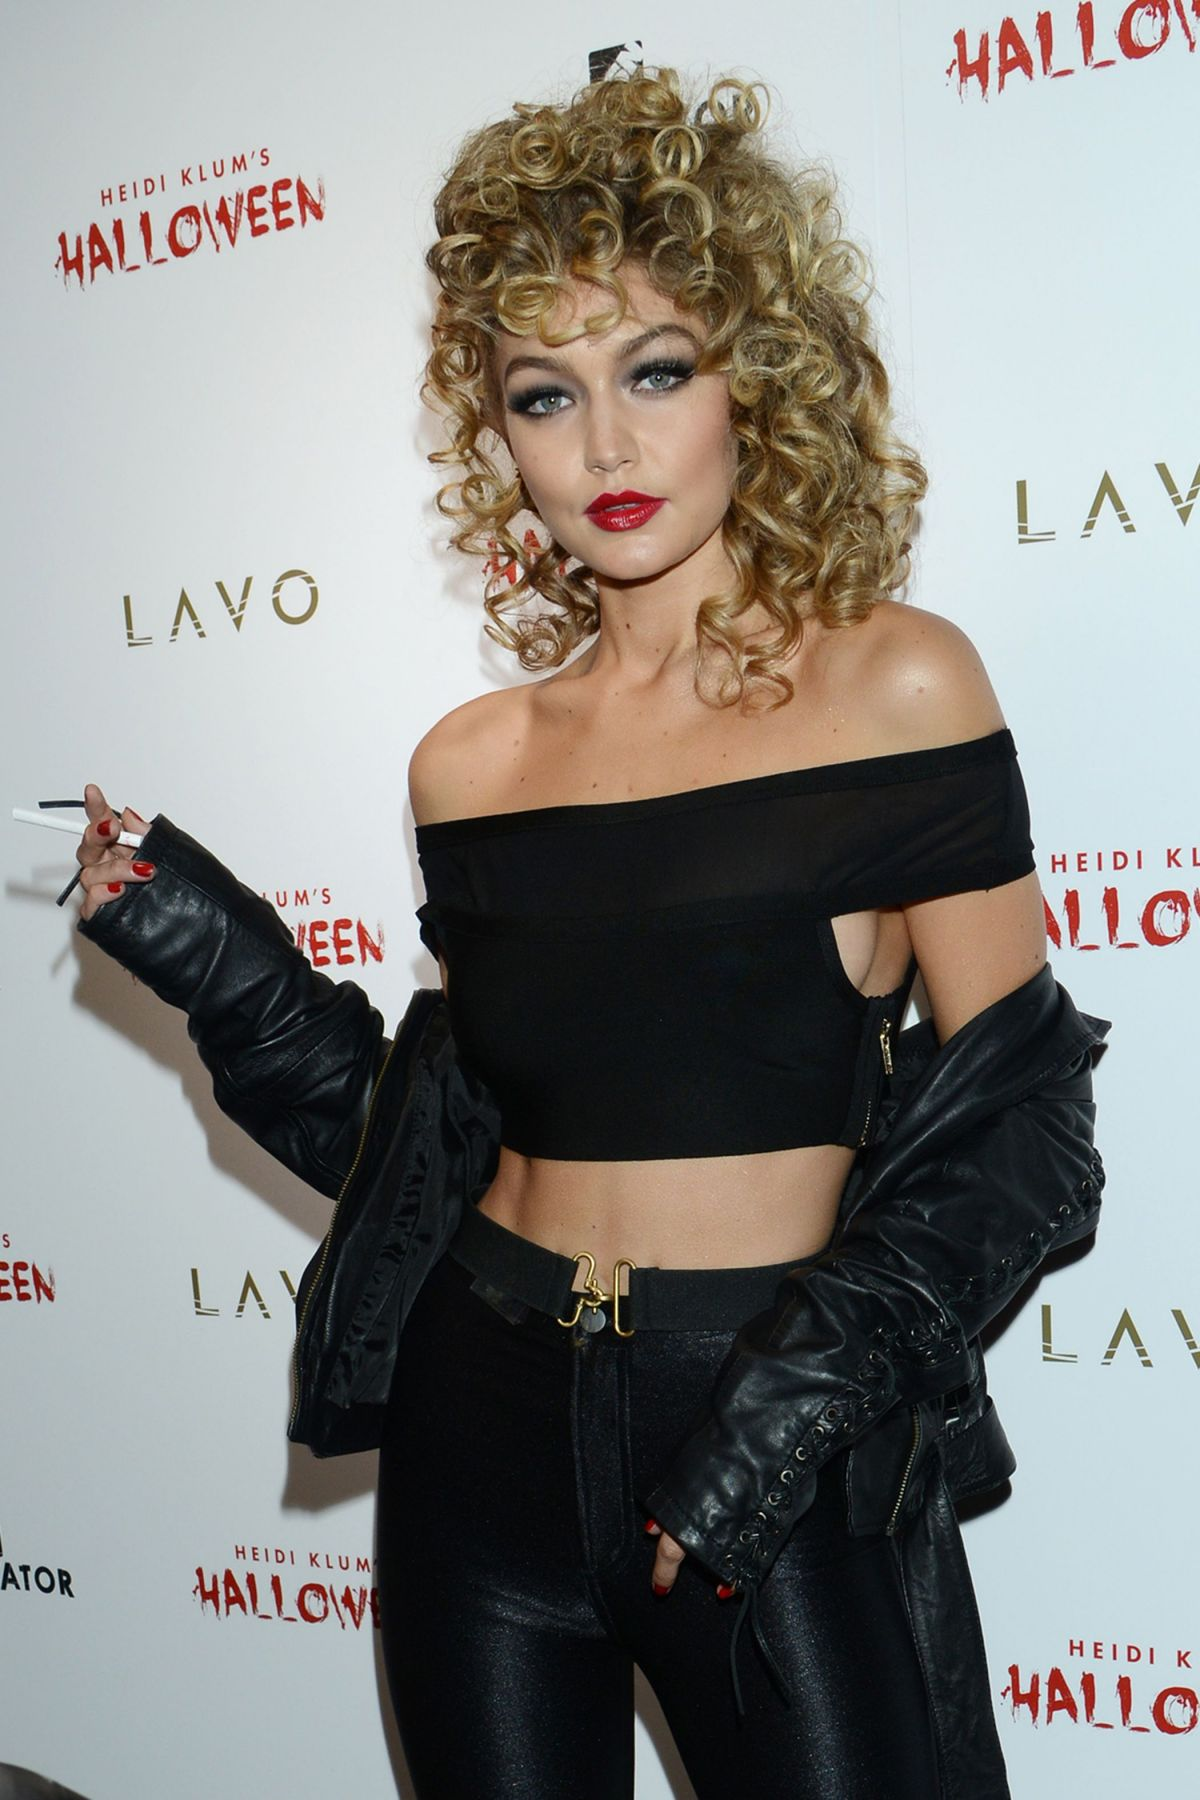 GIGI HADID at Heidi Klum Halloween Party in New York 10/31/2015